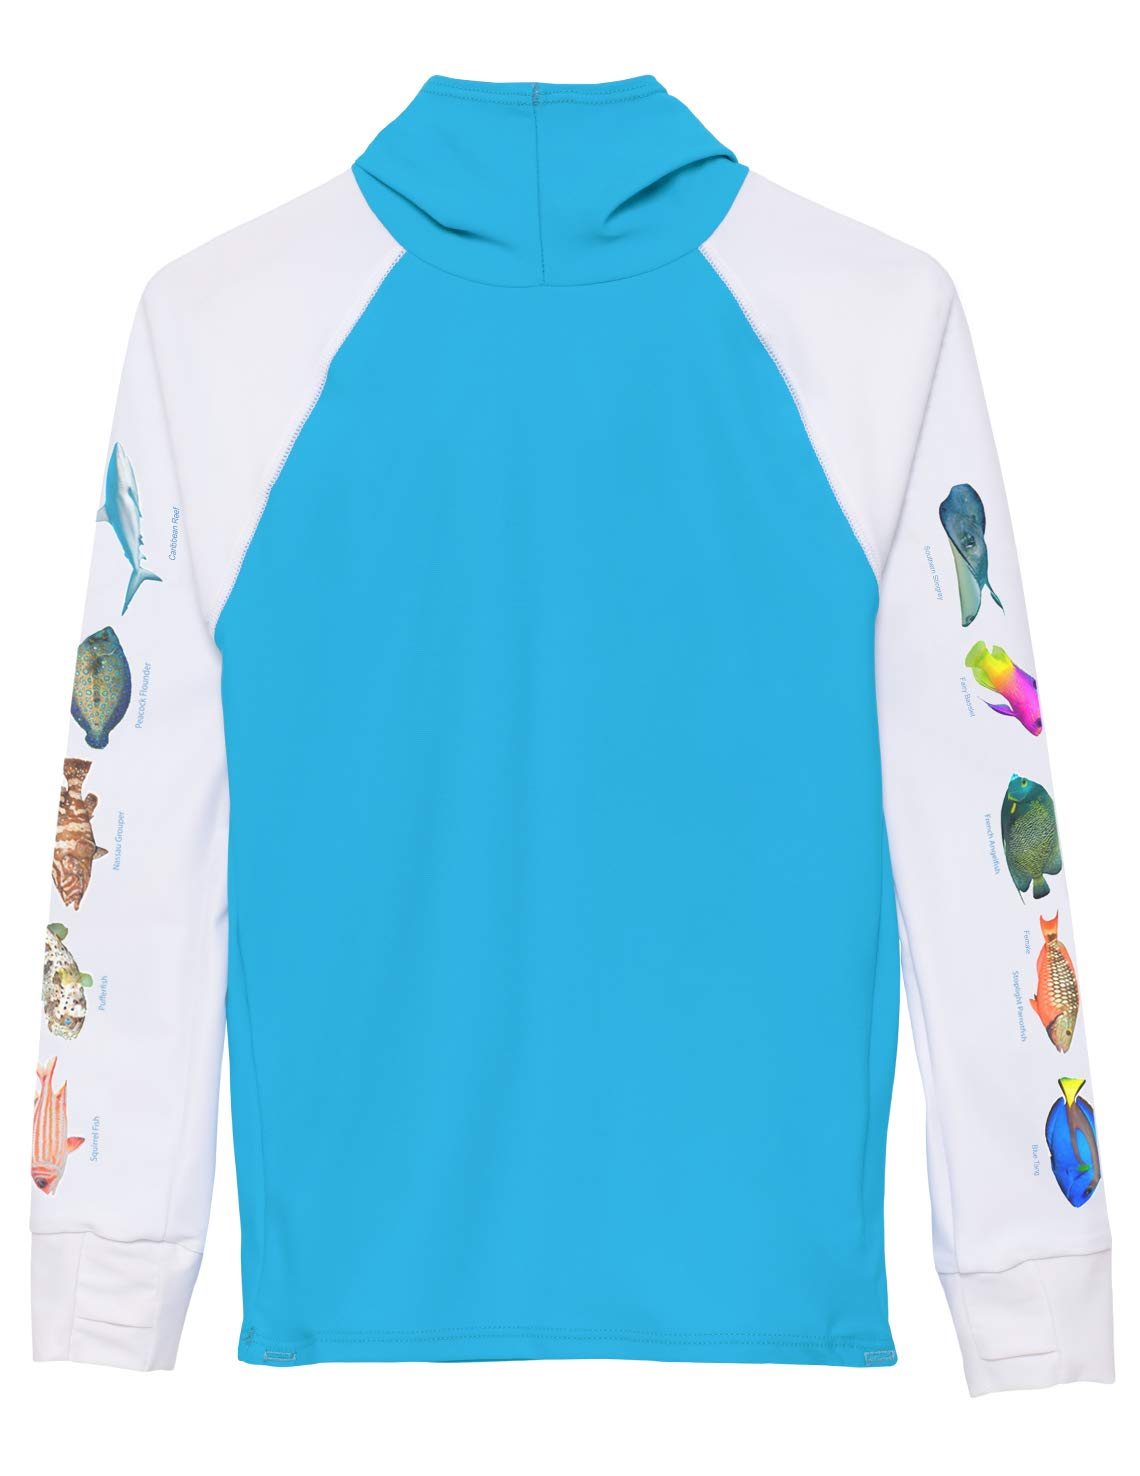 Tuga Girls Hooded Snorkel Rash Guard - Caribbean Fish ID (UPF 50+), Hawaii, 11/12 yrs by Tuga Sunwear